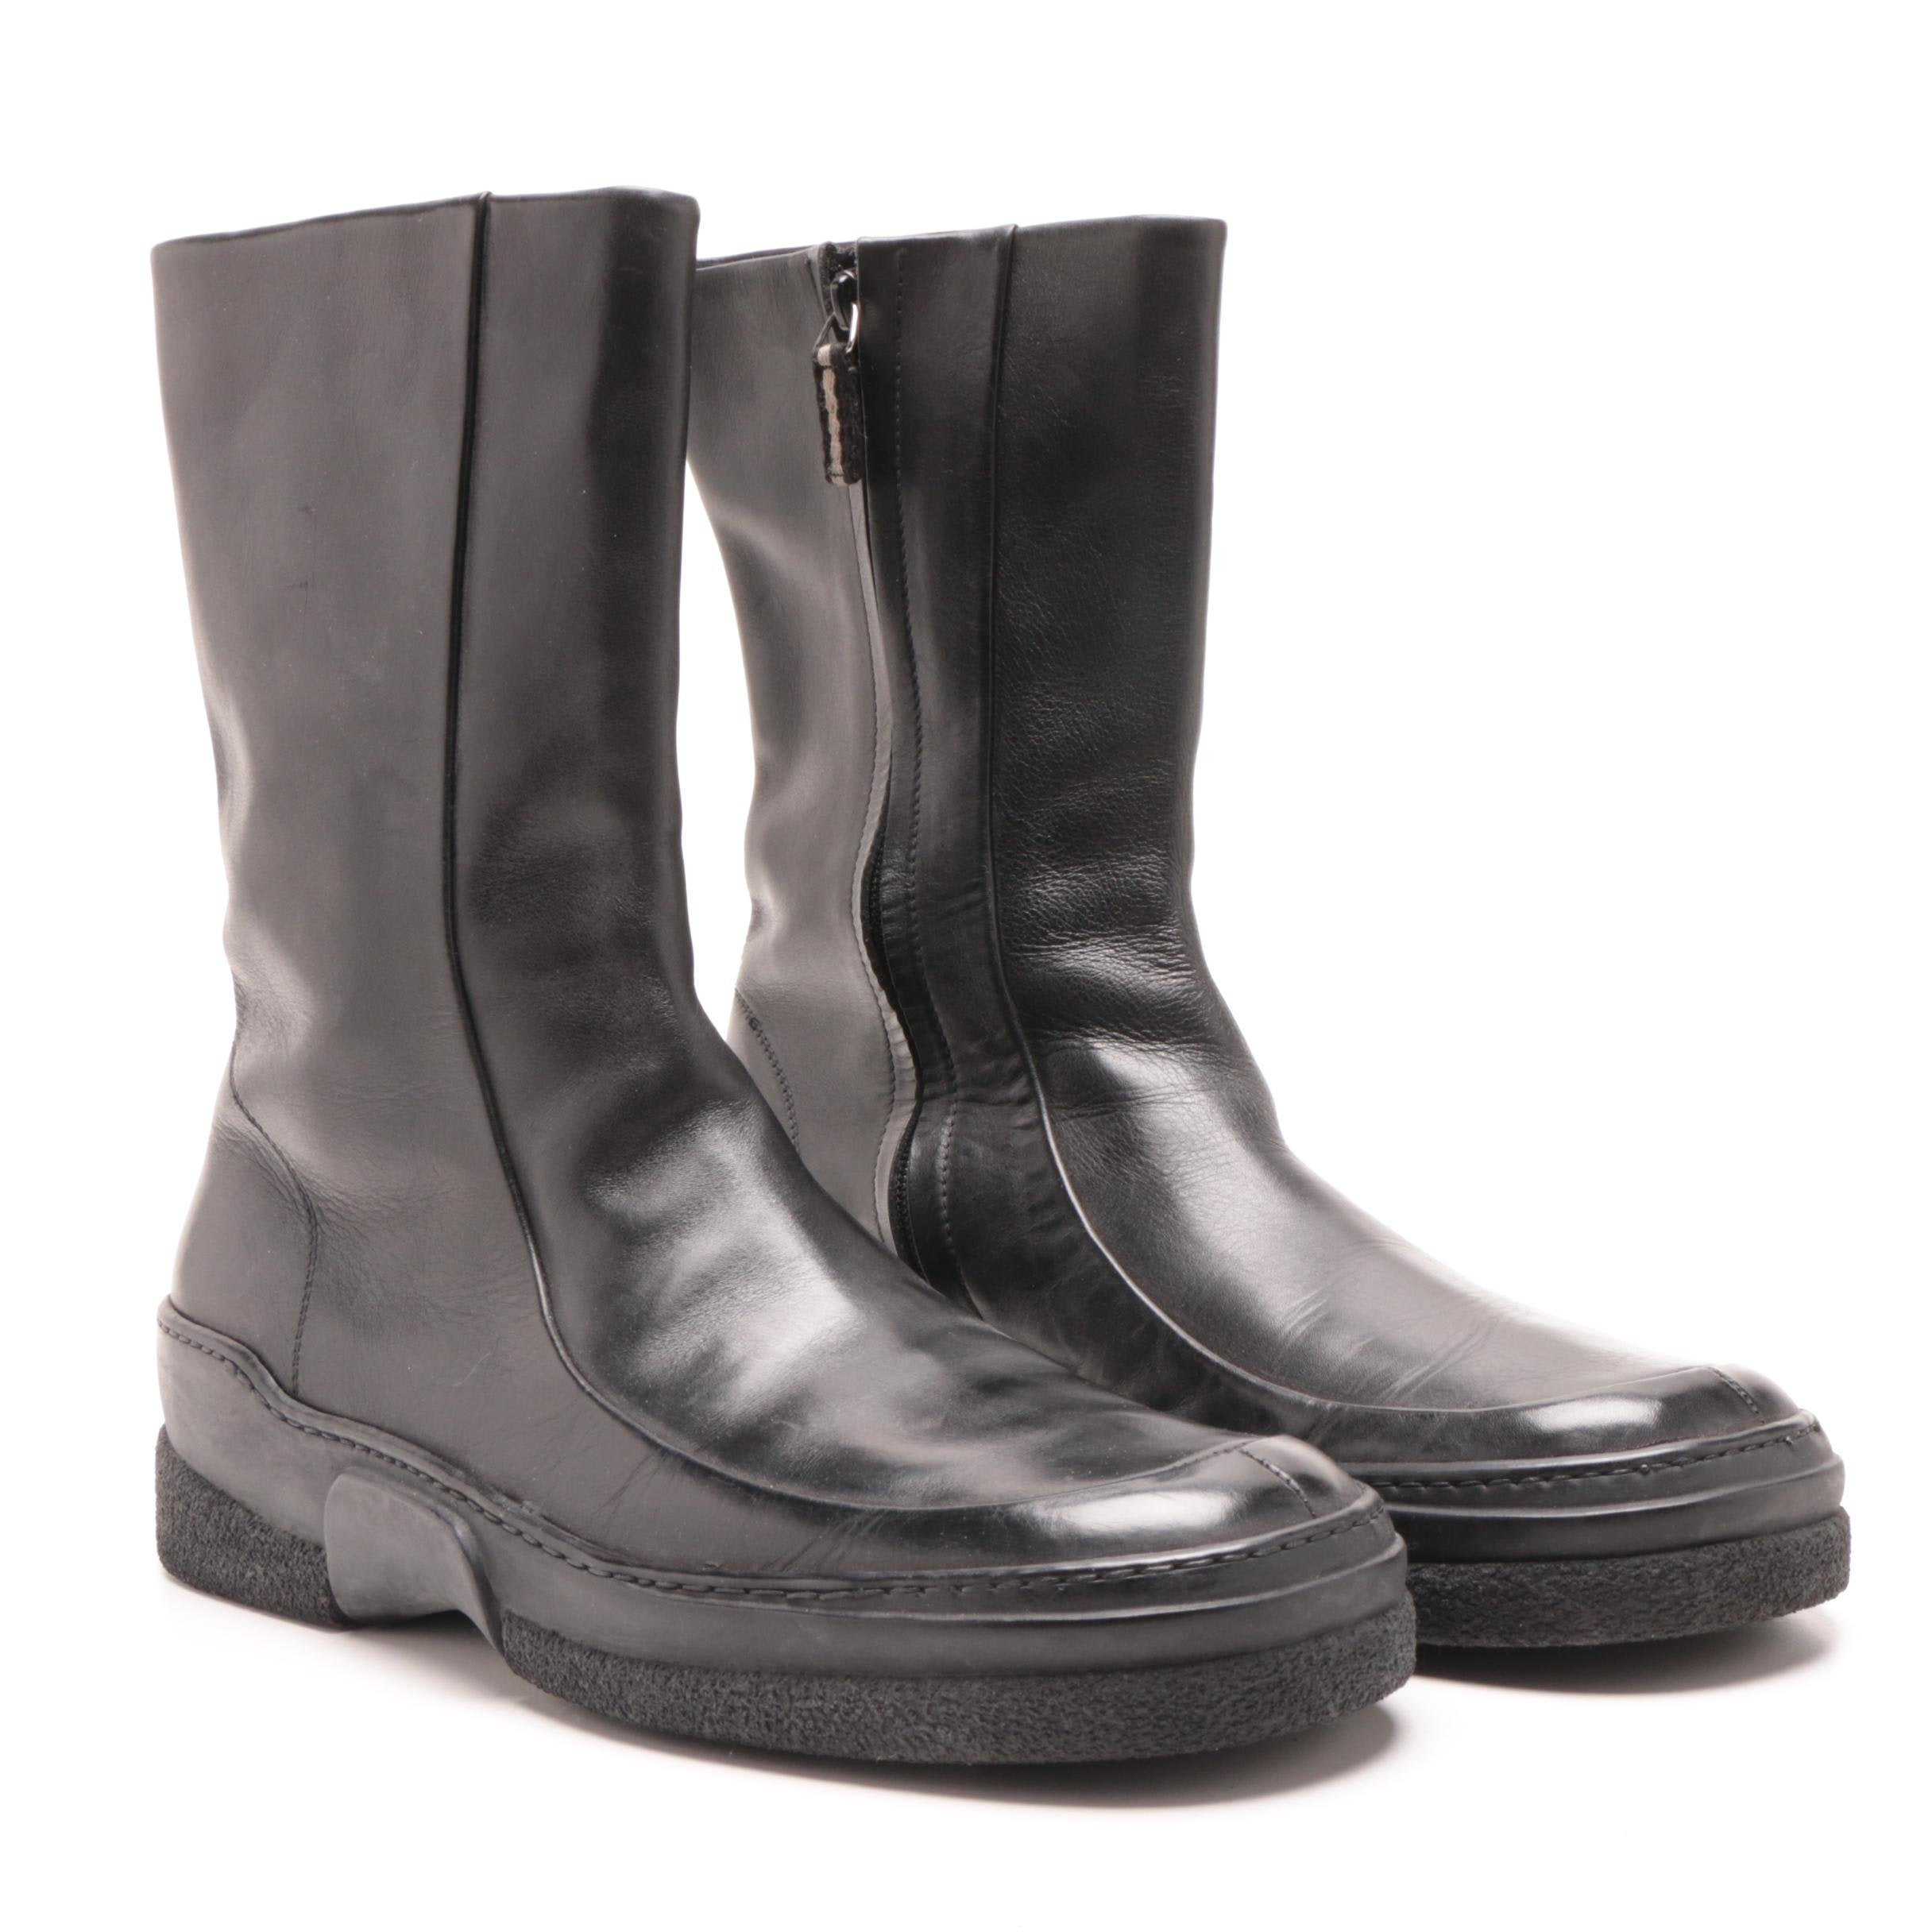 Men's Gucci Black Leather Boots